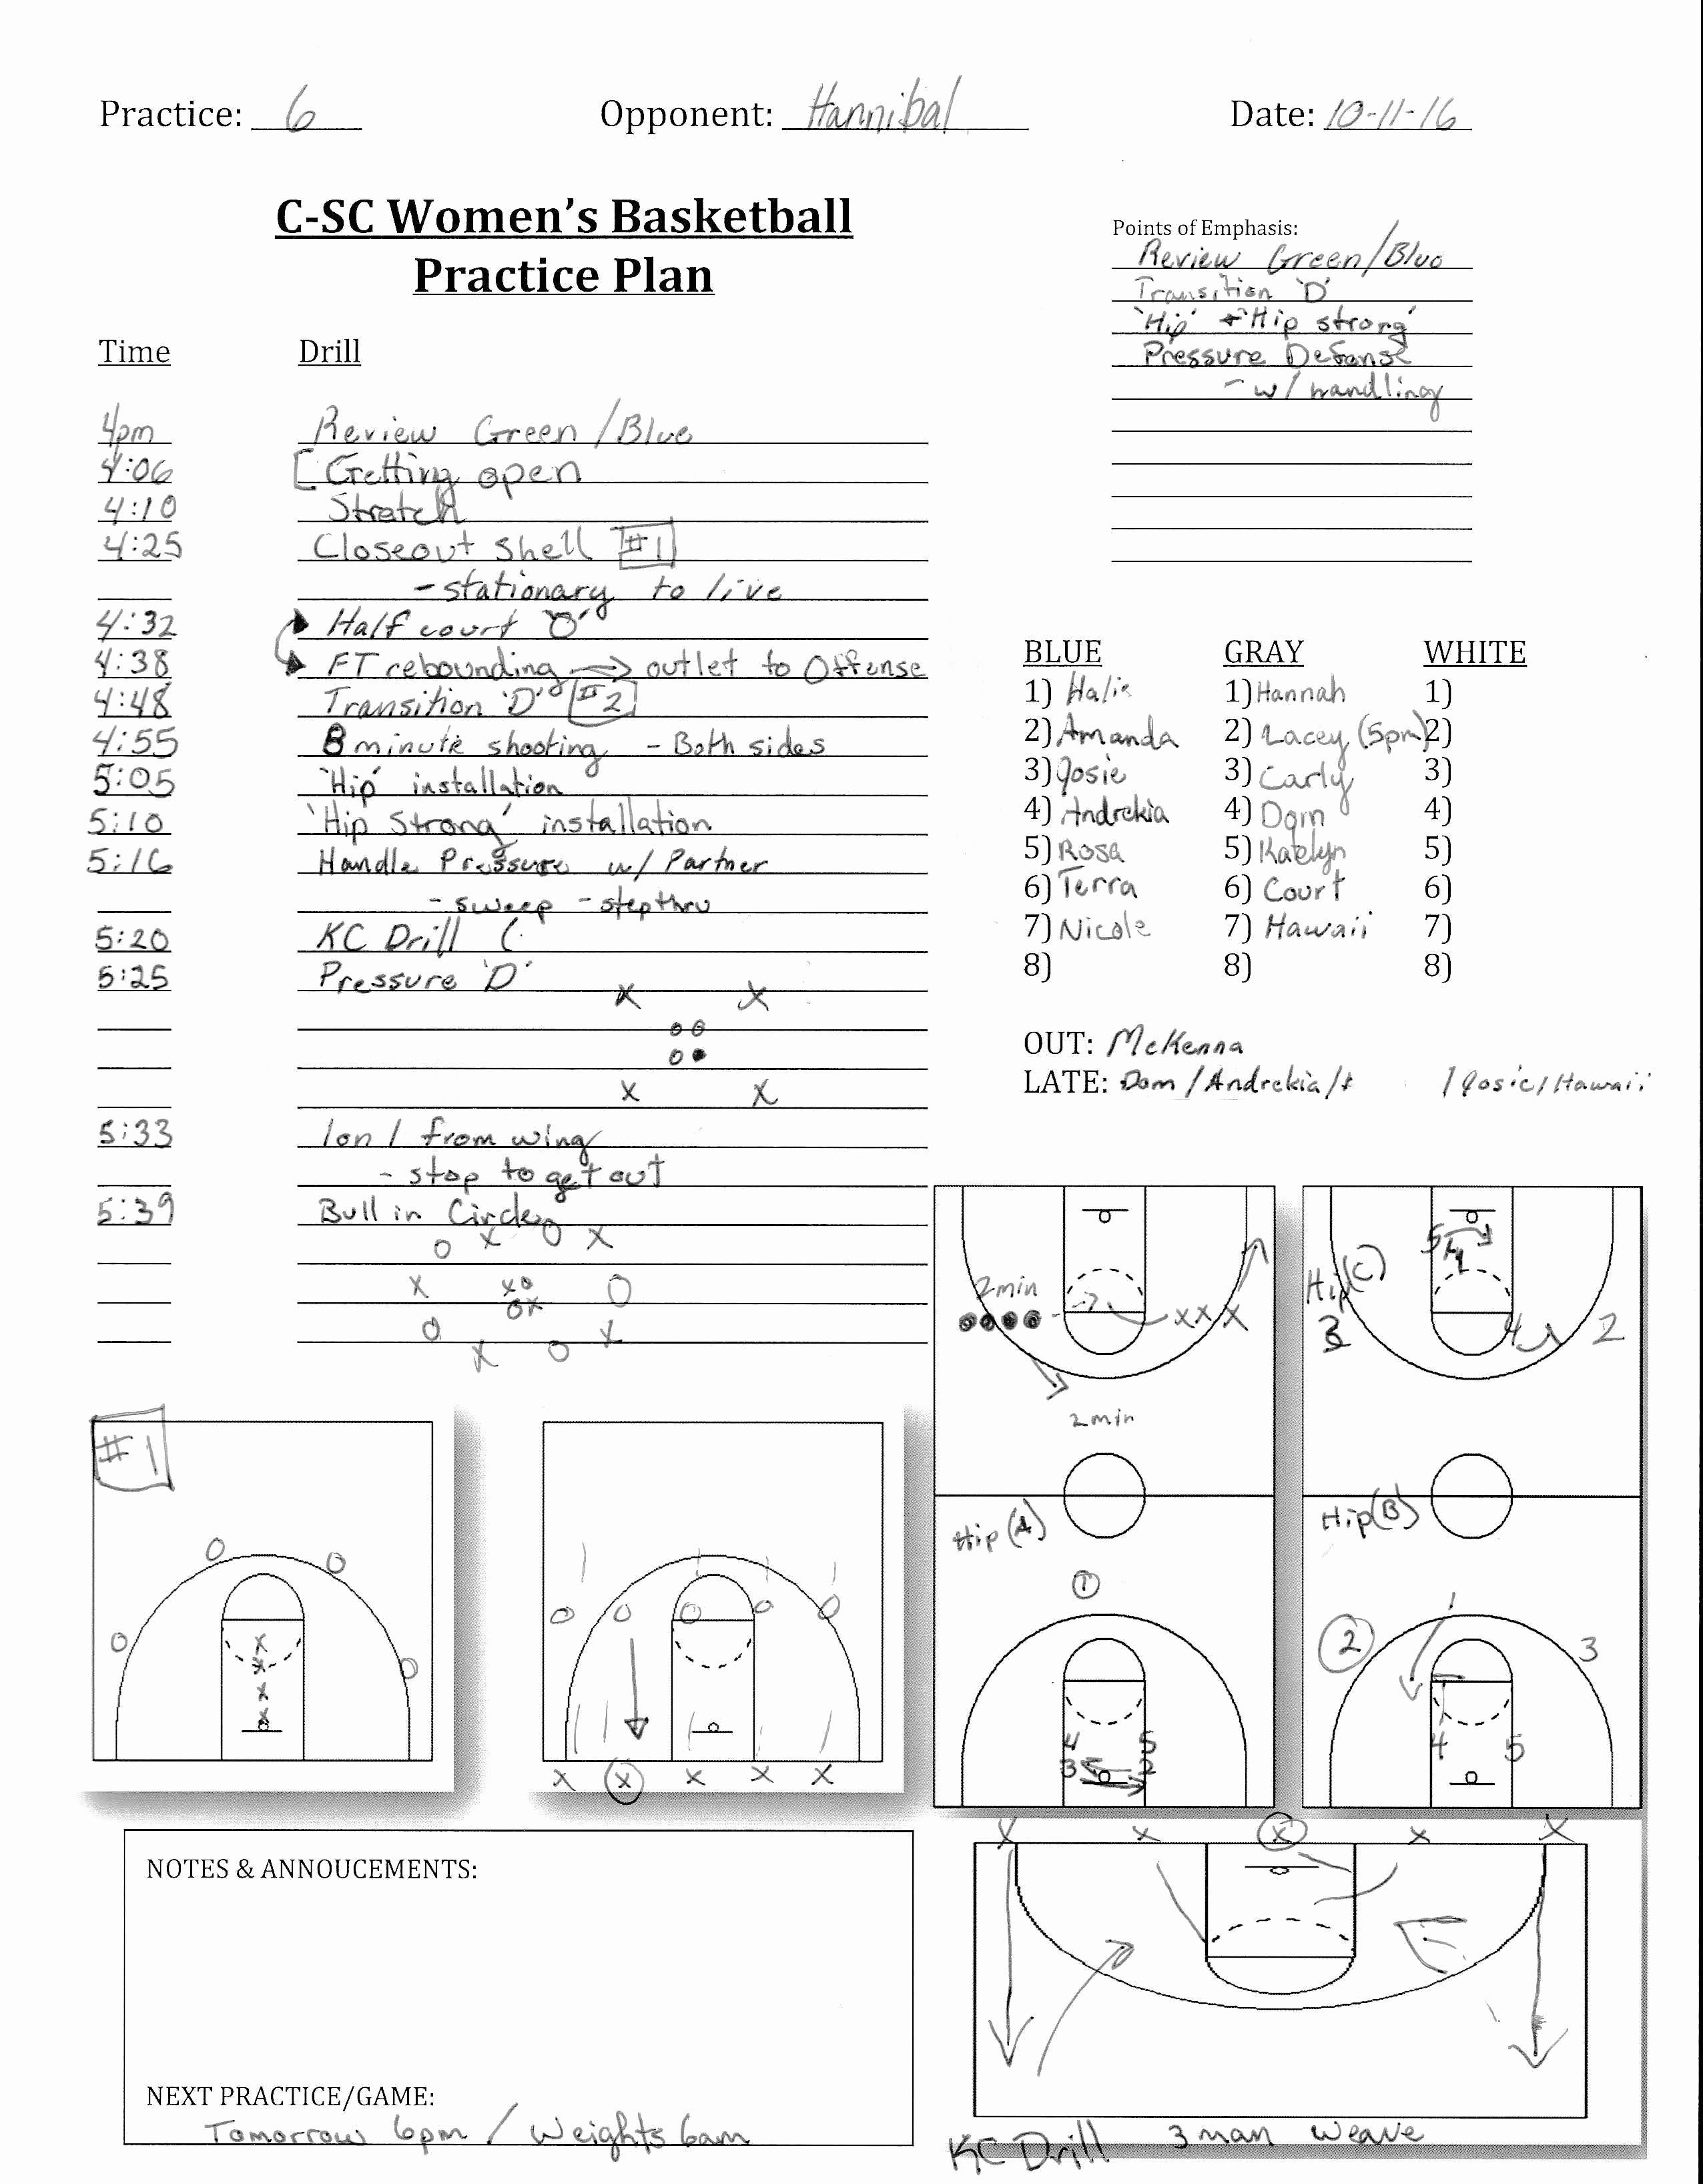 Basketball Practice Plans Template Luxury Basketball Training Plan for Beginners